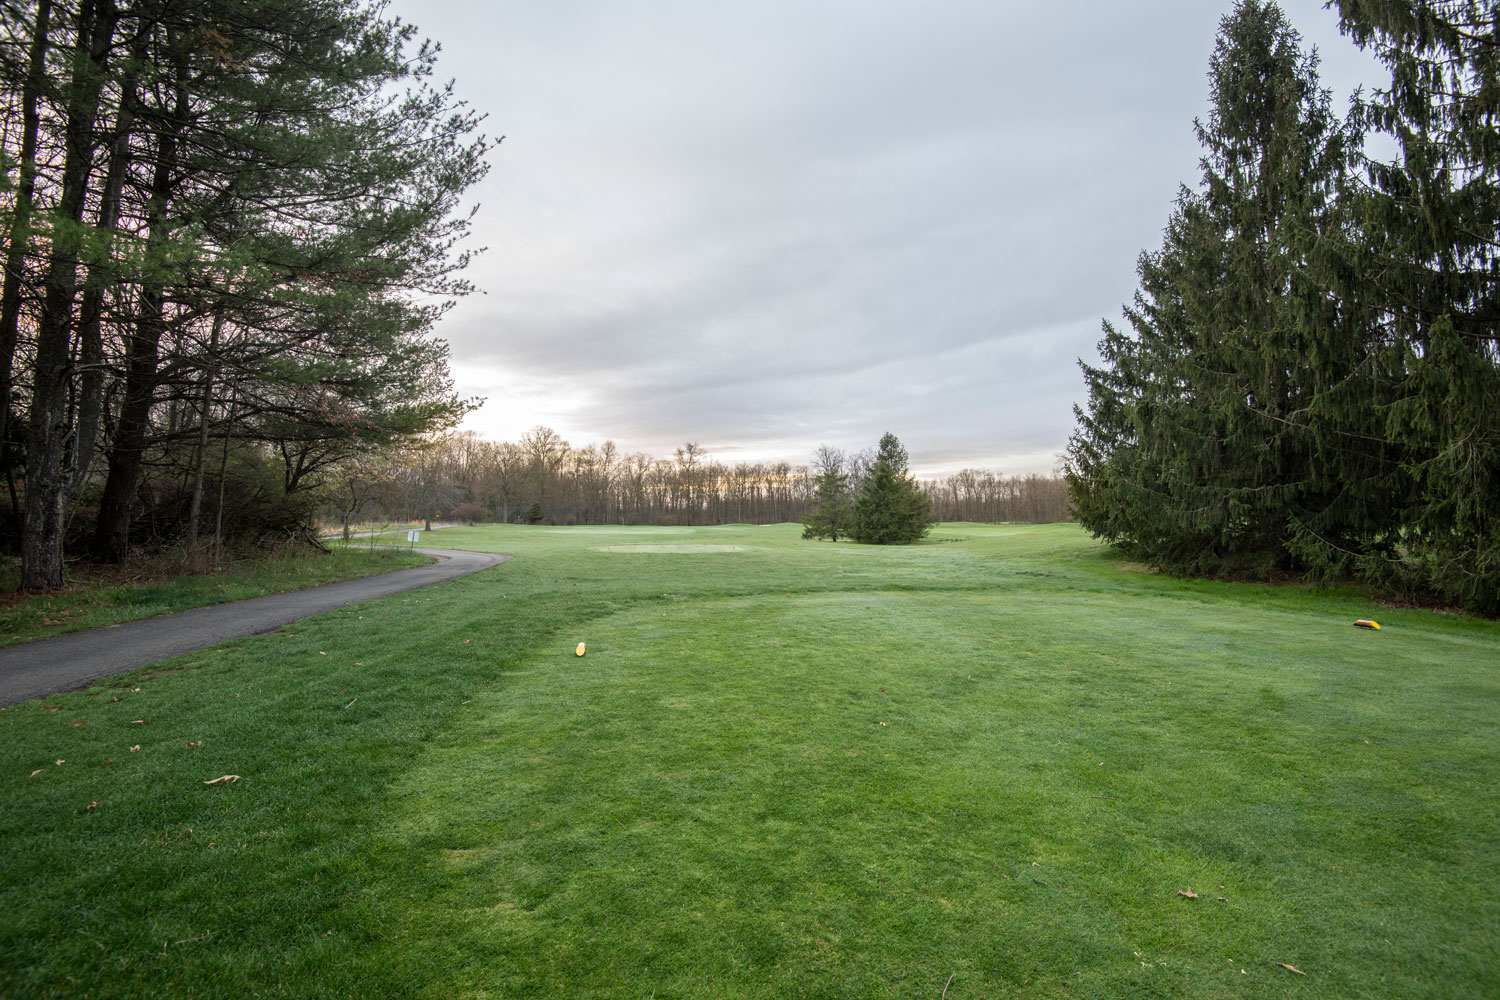 The fairway at Hickory Valley Golf Course